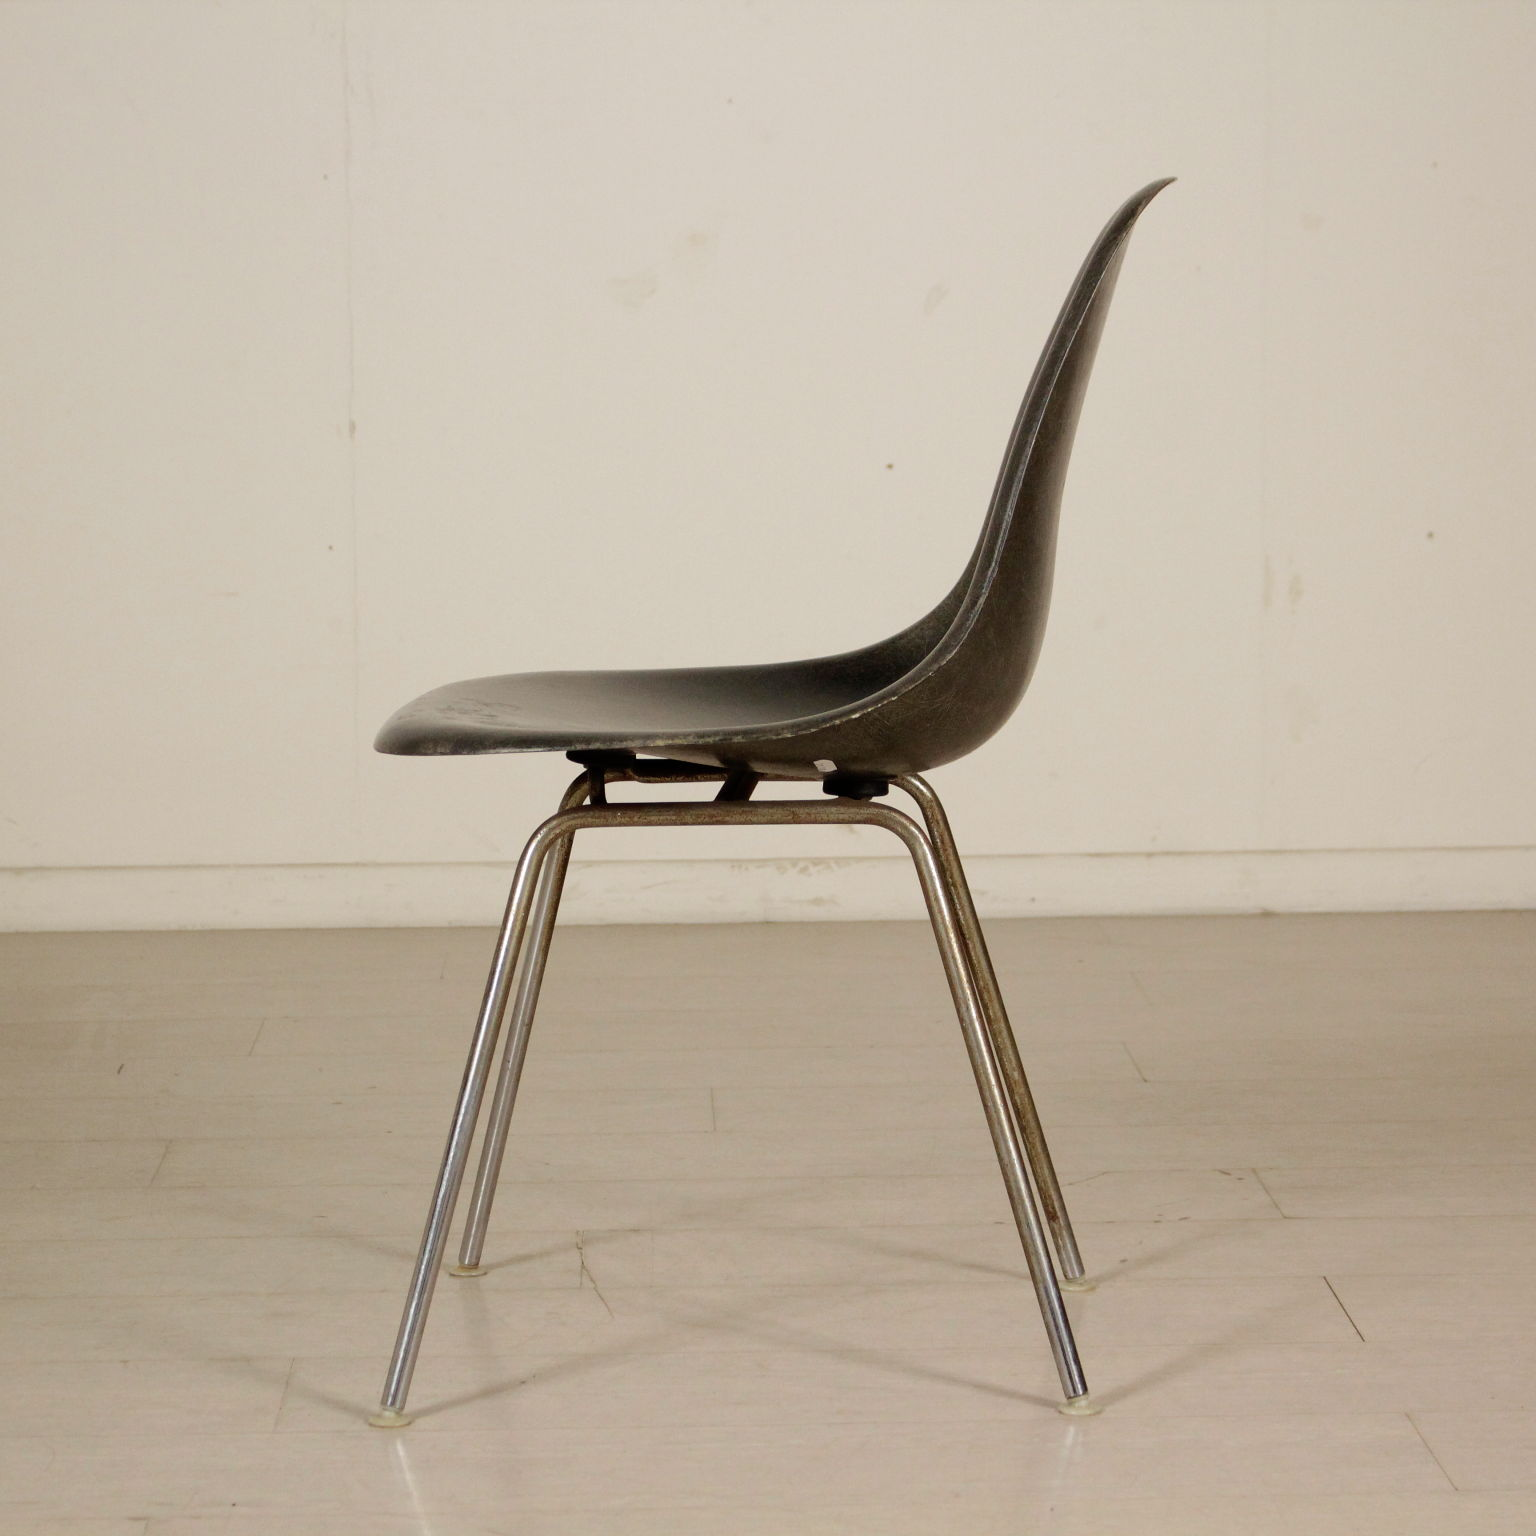 Chair by Charles Eames for Herman Miller Vintage USA 1960s - Chairs ...